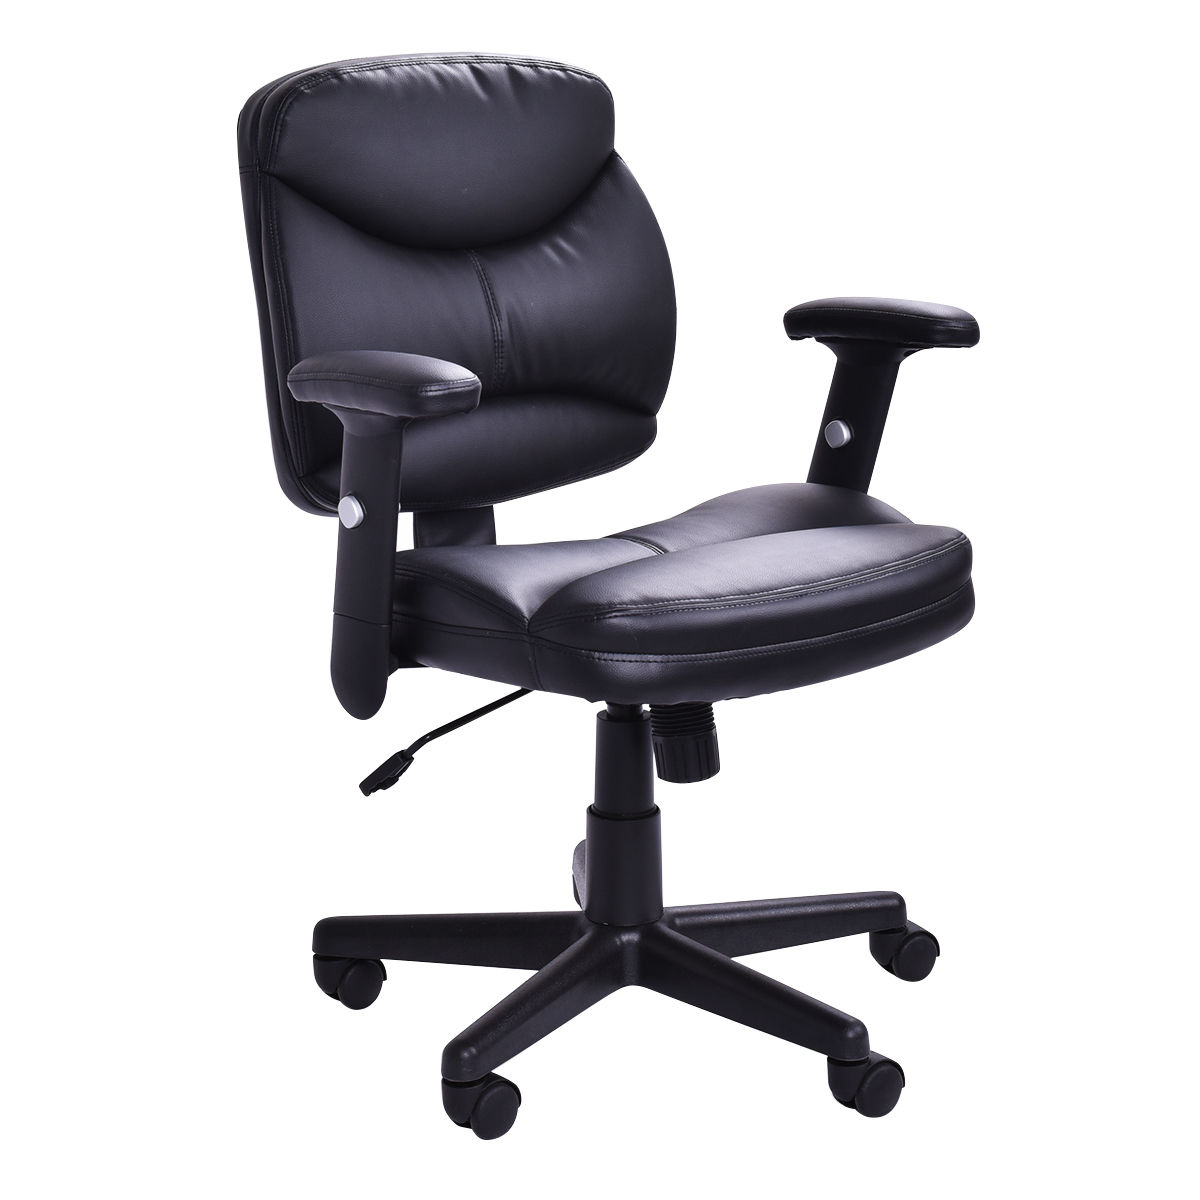 Giantex Executive PU Leather Office Chair Mid-Back Modern Computer Desk Task Armchair Modern Swivel Gaming Chair HW52714 new pu leather high back desk office chair executive ergonomic computer task hw50277